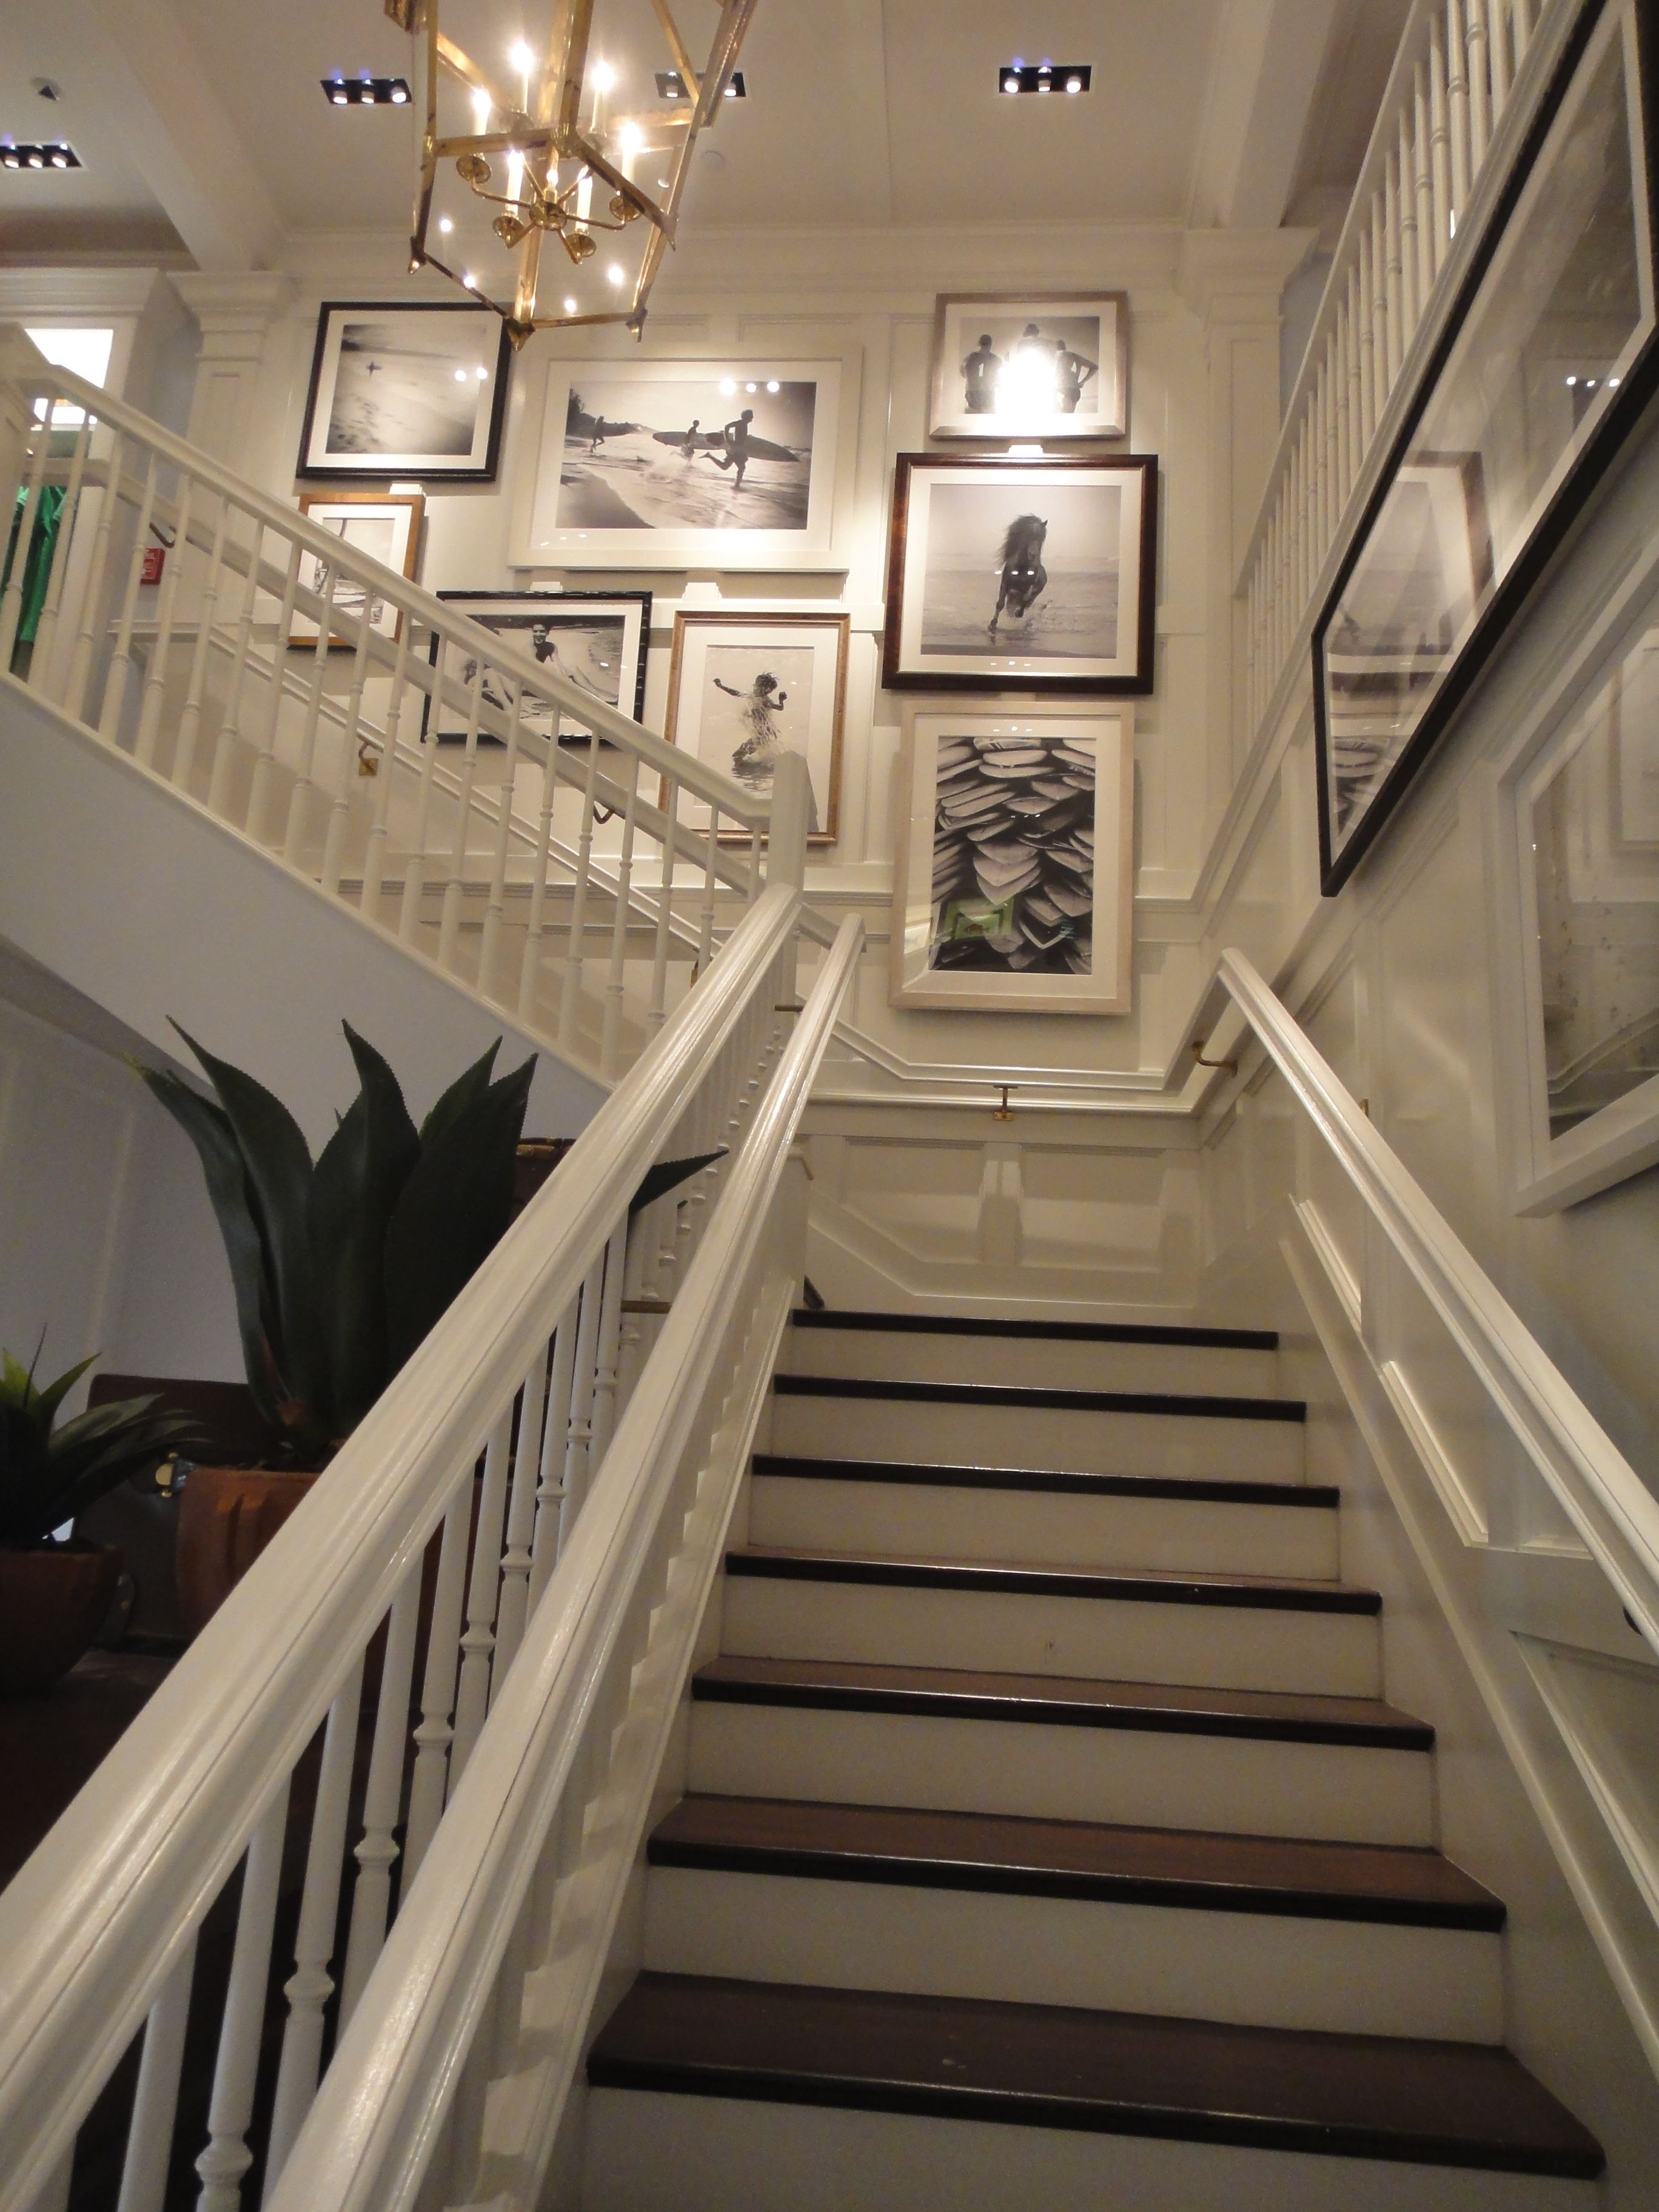 Stairwell Photo Gallery Not As Overpowering With Larger